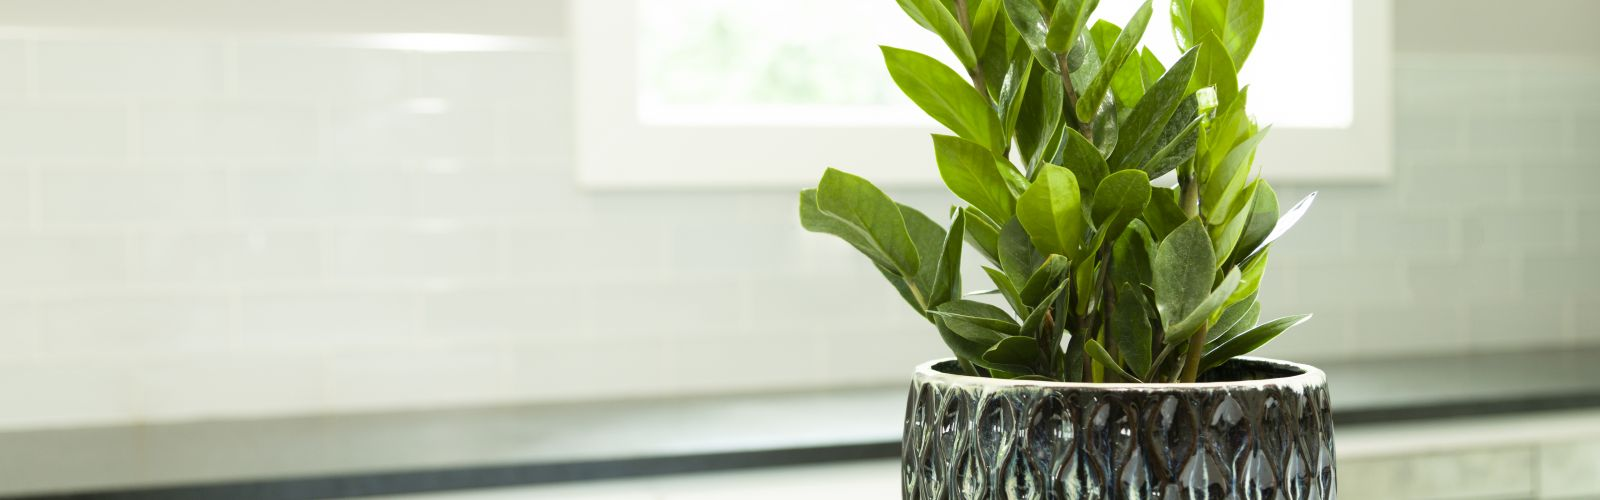 zz houseplant helps clean the air